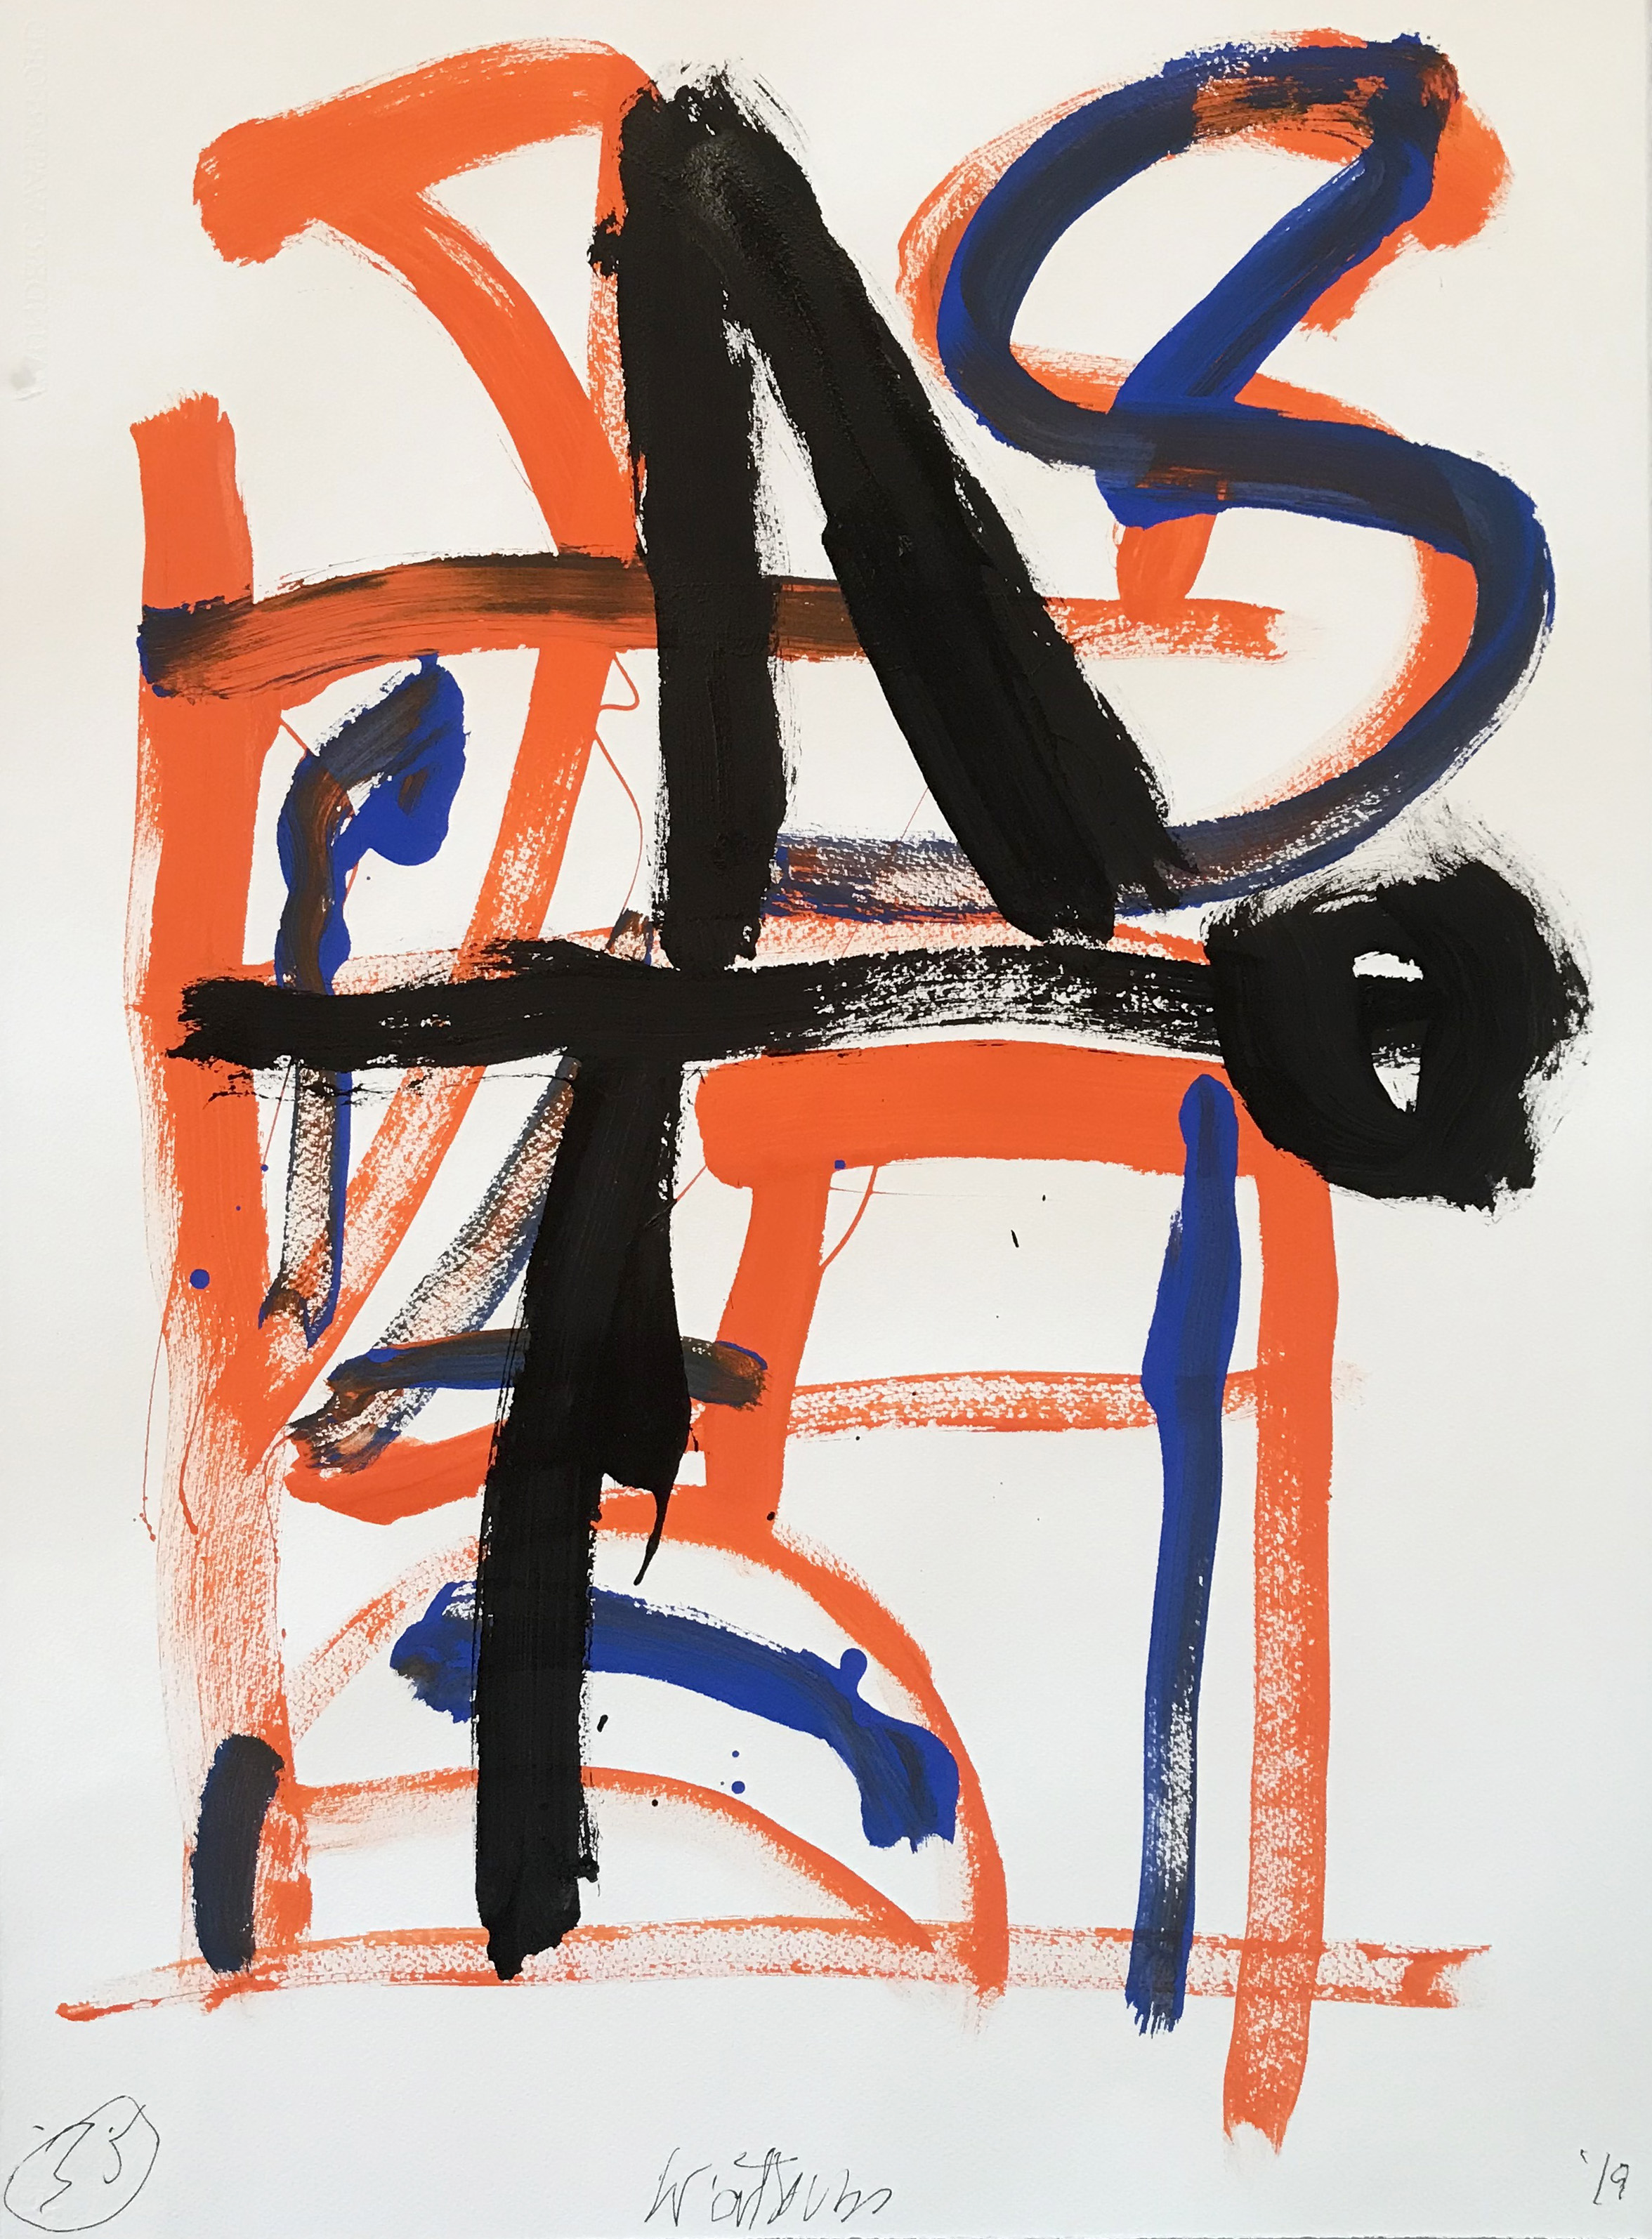 DICK WATKINS  Untitled drawing 35 , 2019 acrylic on 300gsm paper 76 x 56 cm